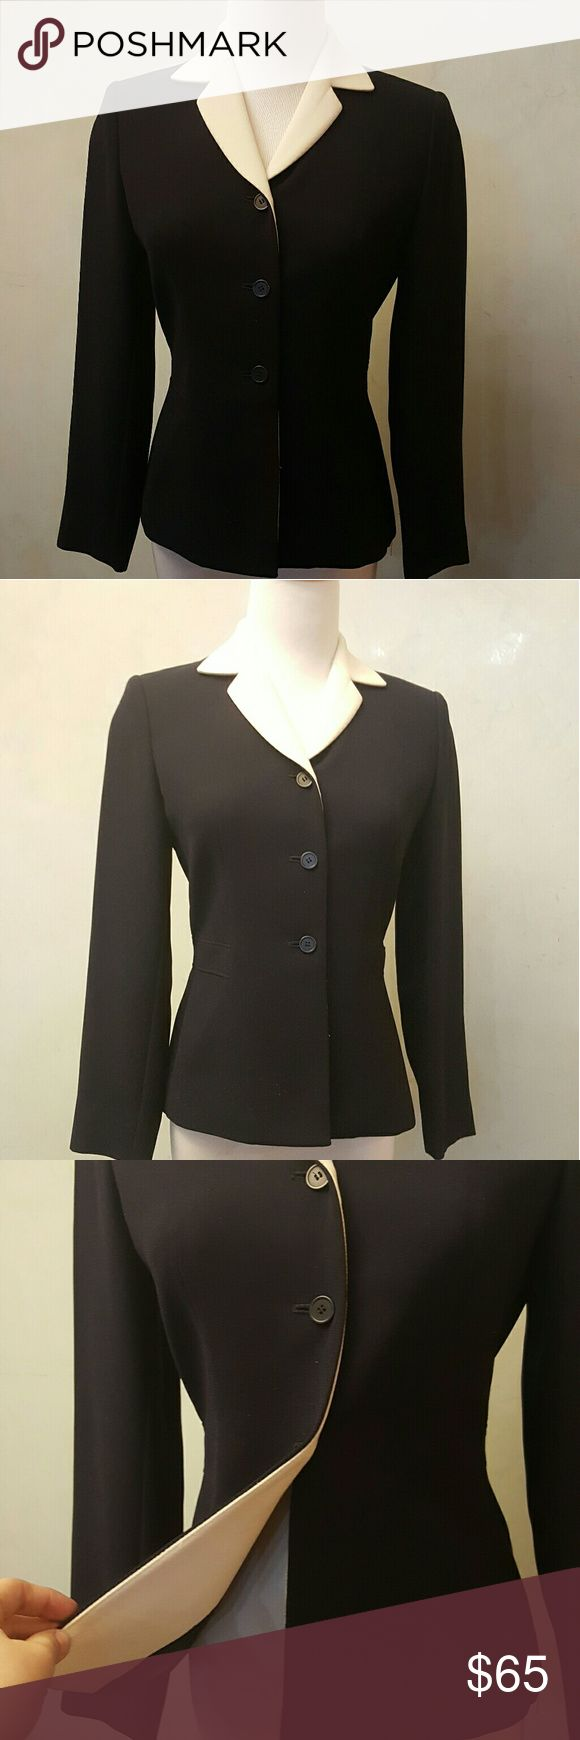 Ann Taylor black suit jacket Ann Taylor black suit jacket with a cream collar. In perfect condition like new used only 1x Ann Taylor Jackets & Coats Blazers